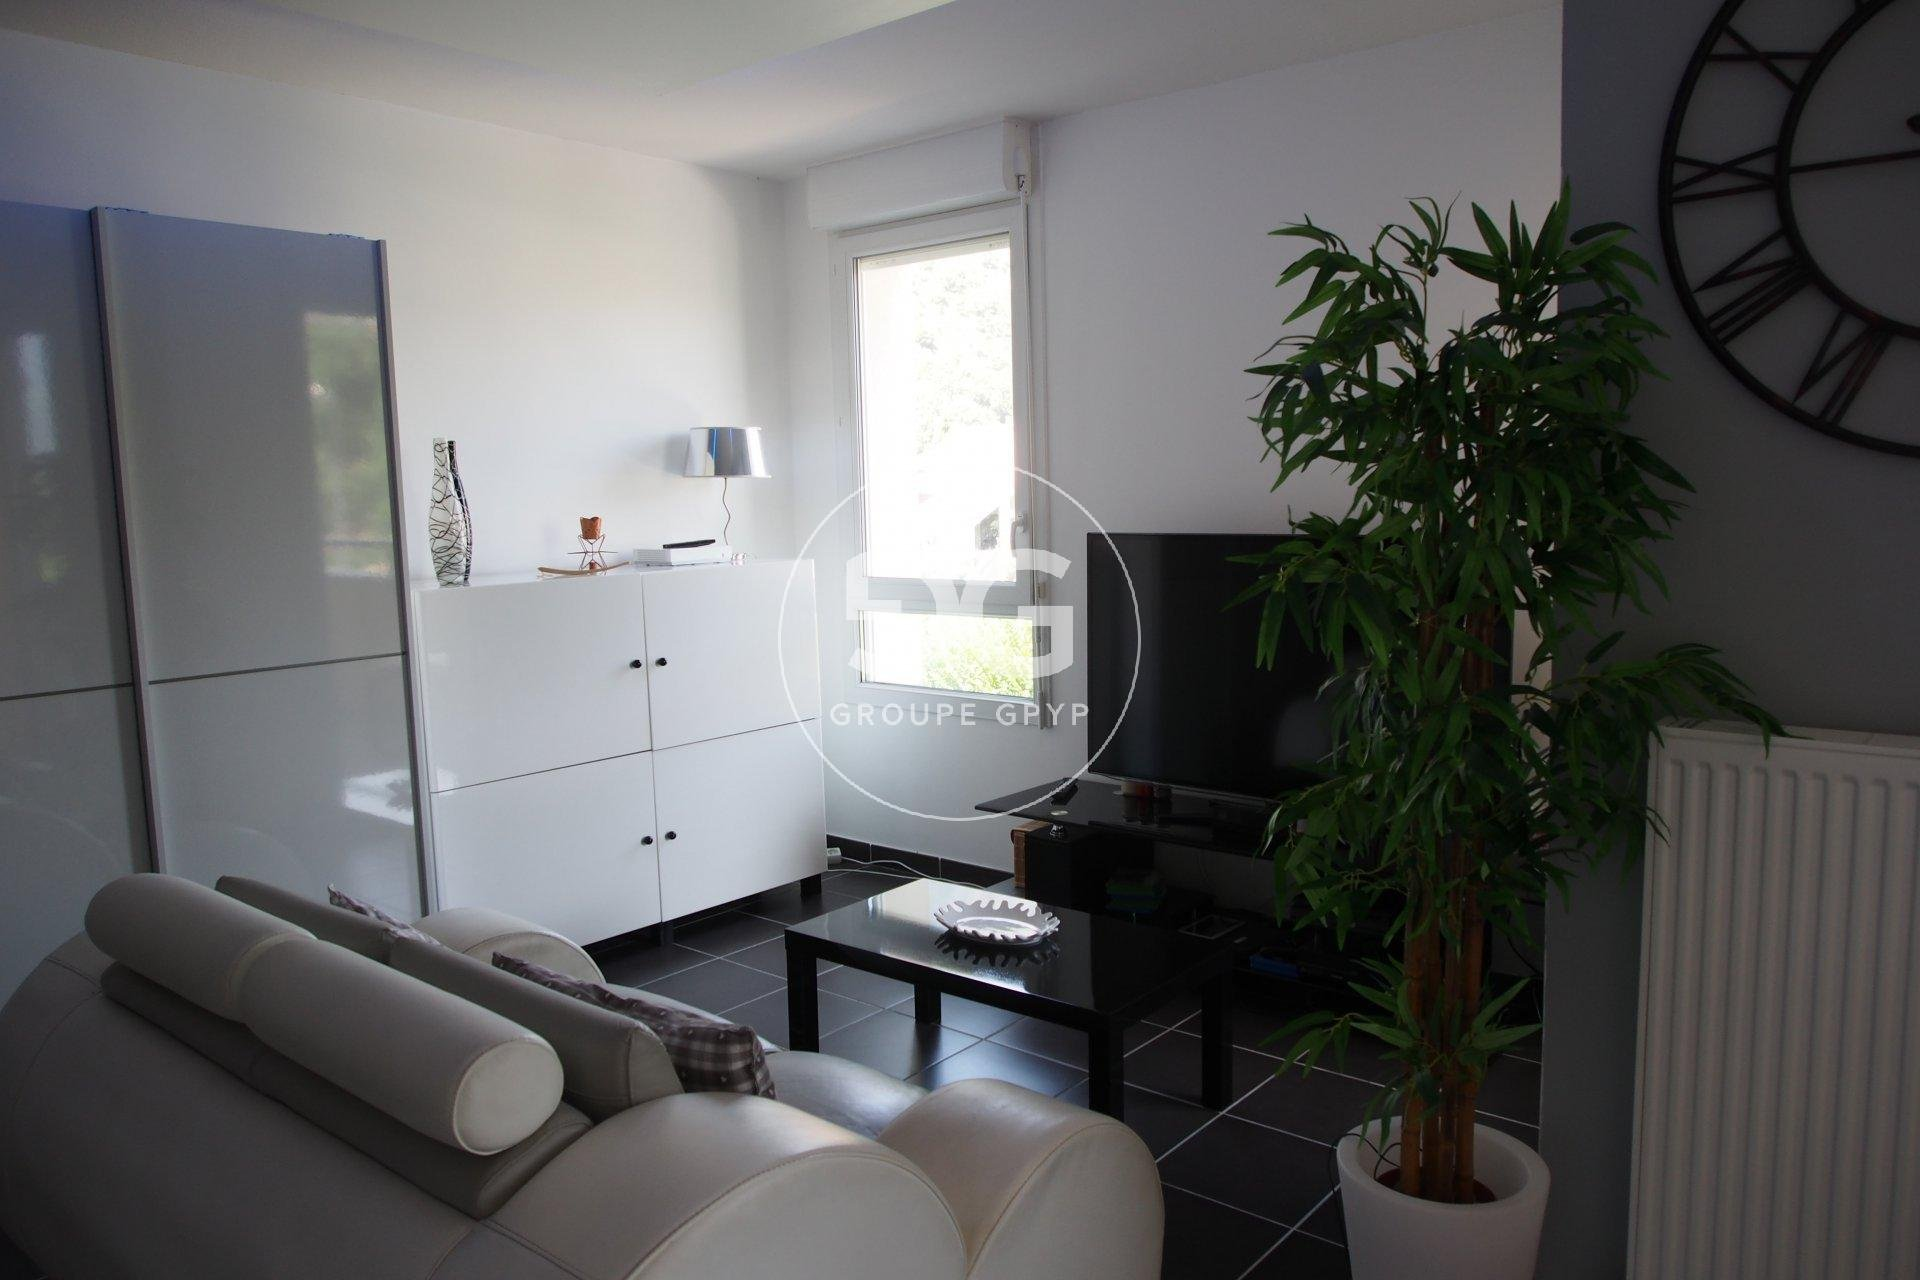 1 Bedroom apartment with terrace and RT2012 insulation